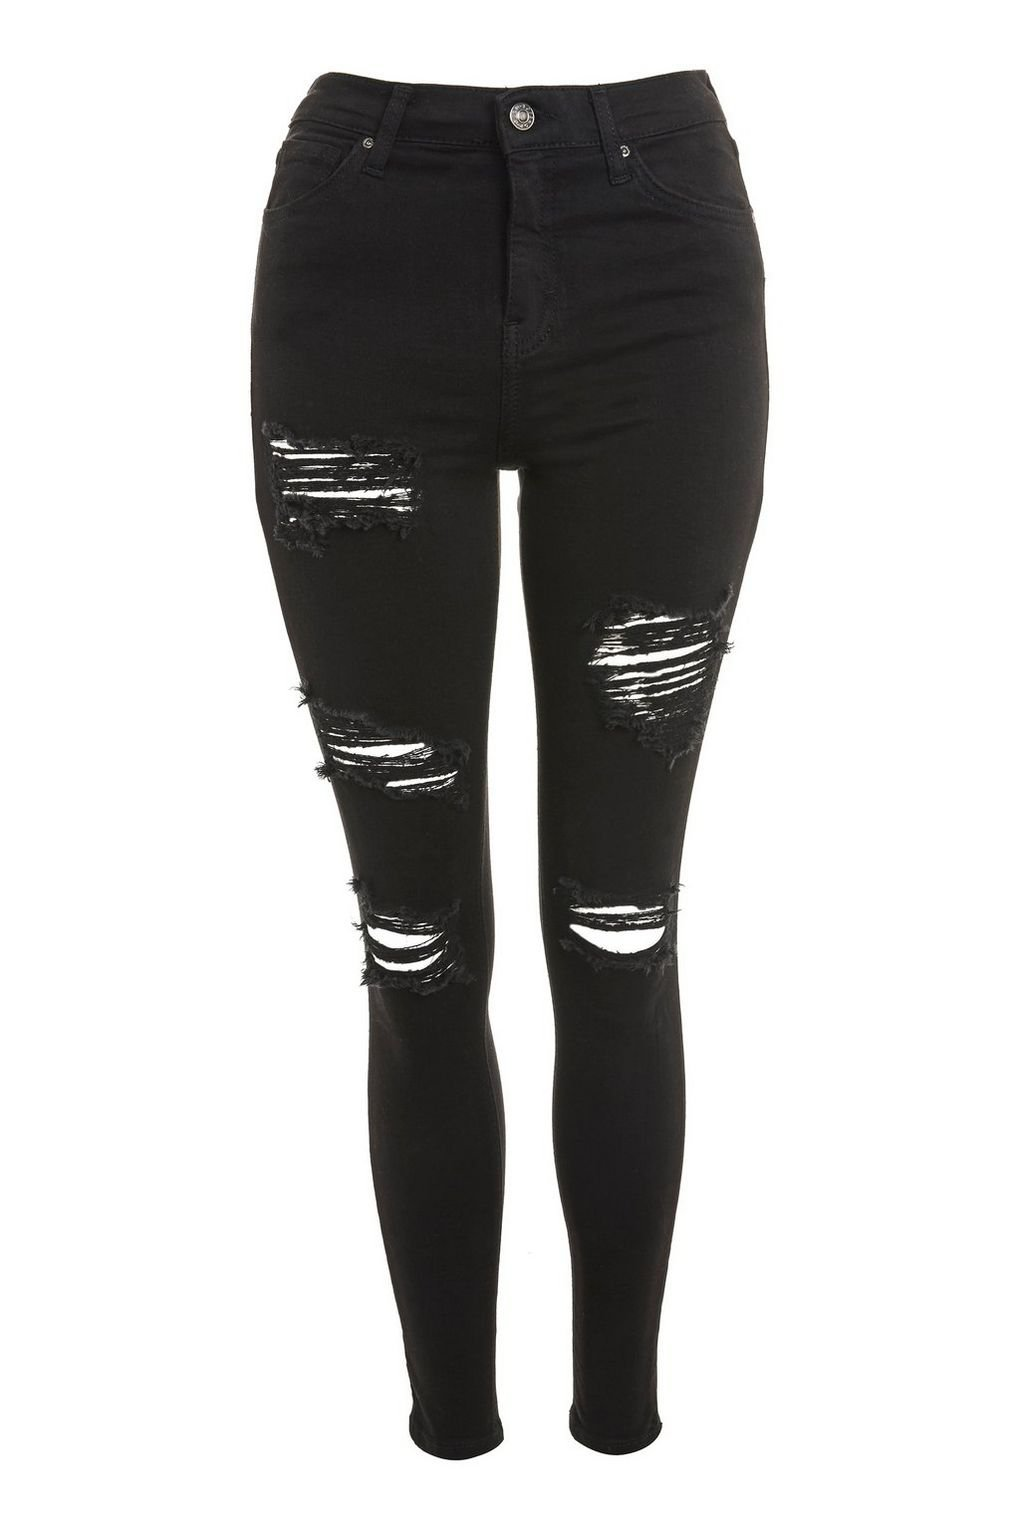 Washed Black Super Ripped Jamie Jeans - Topshop USA